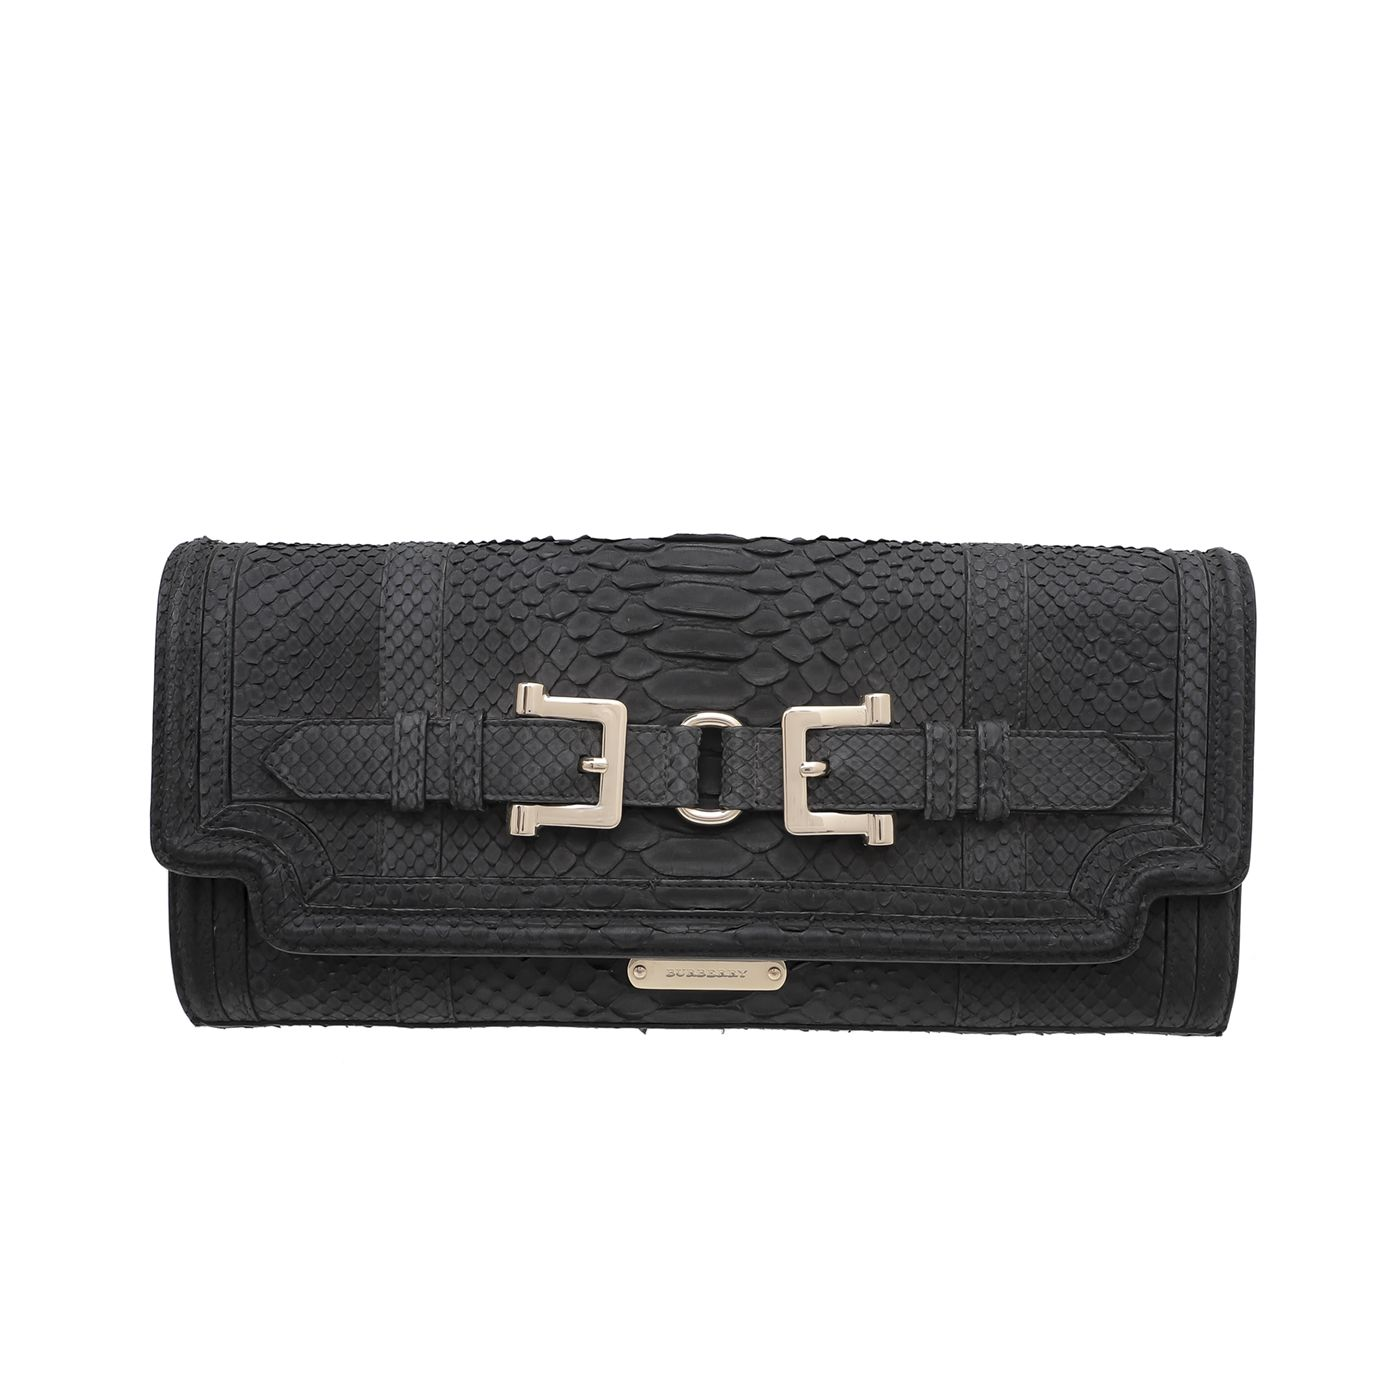 Burberry Black Python Margot Clutch